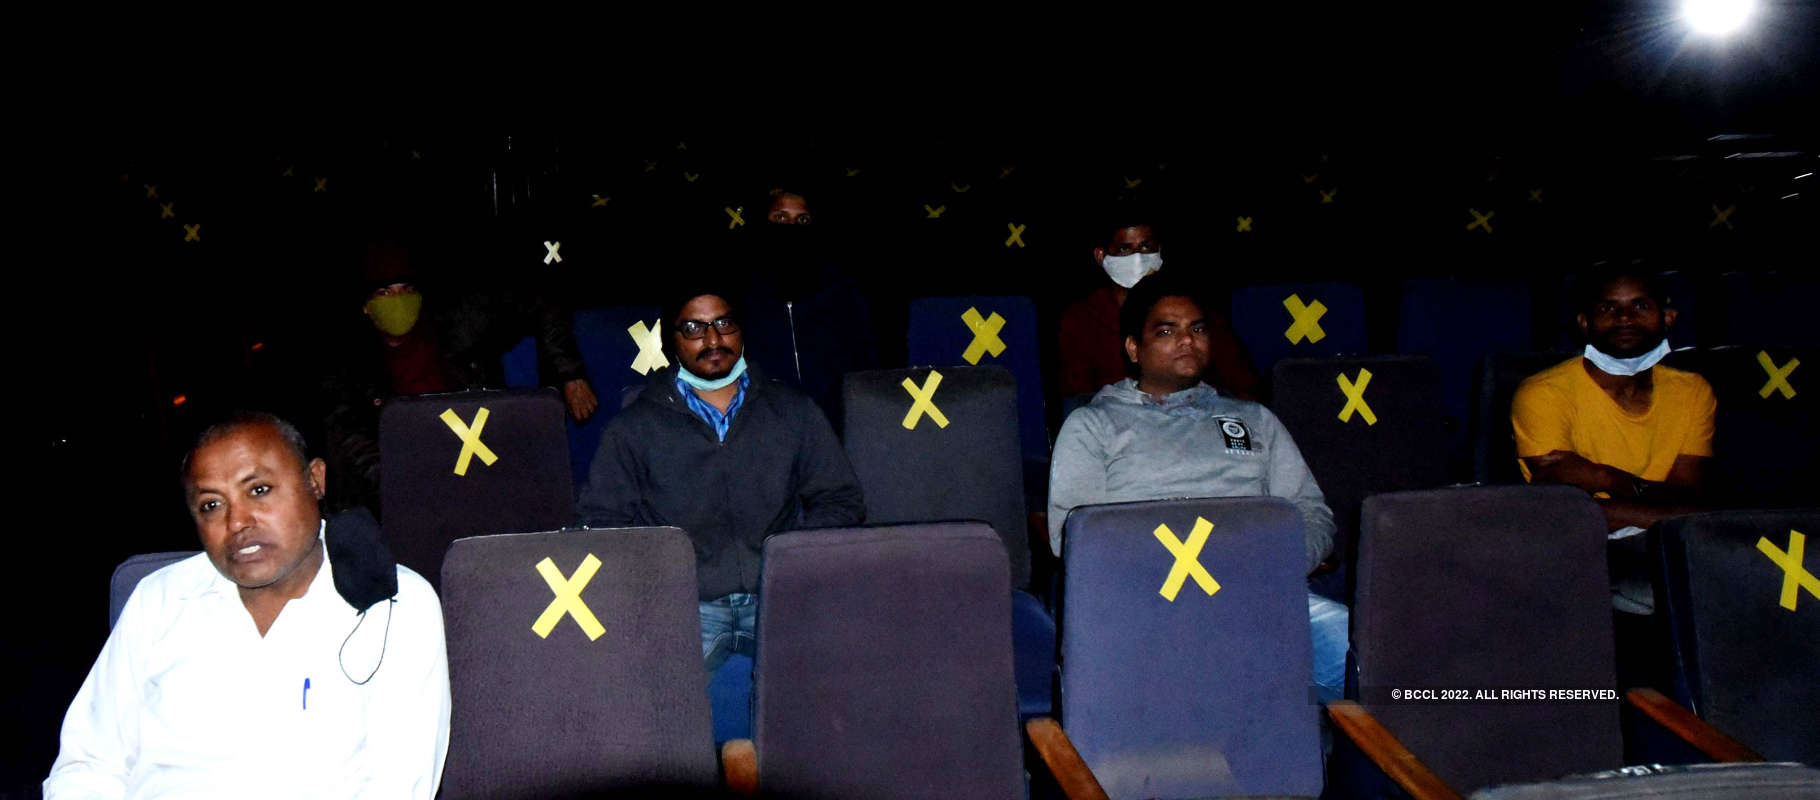 Multiplexes and cinema halls reopen in Jaipur